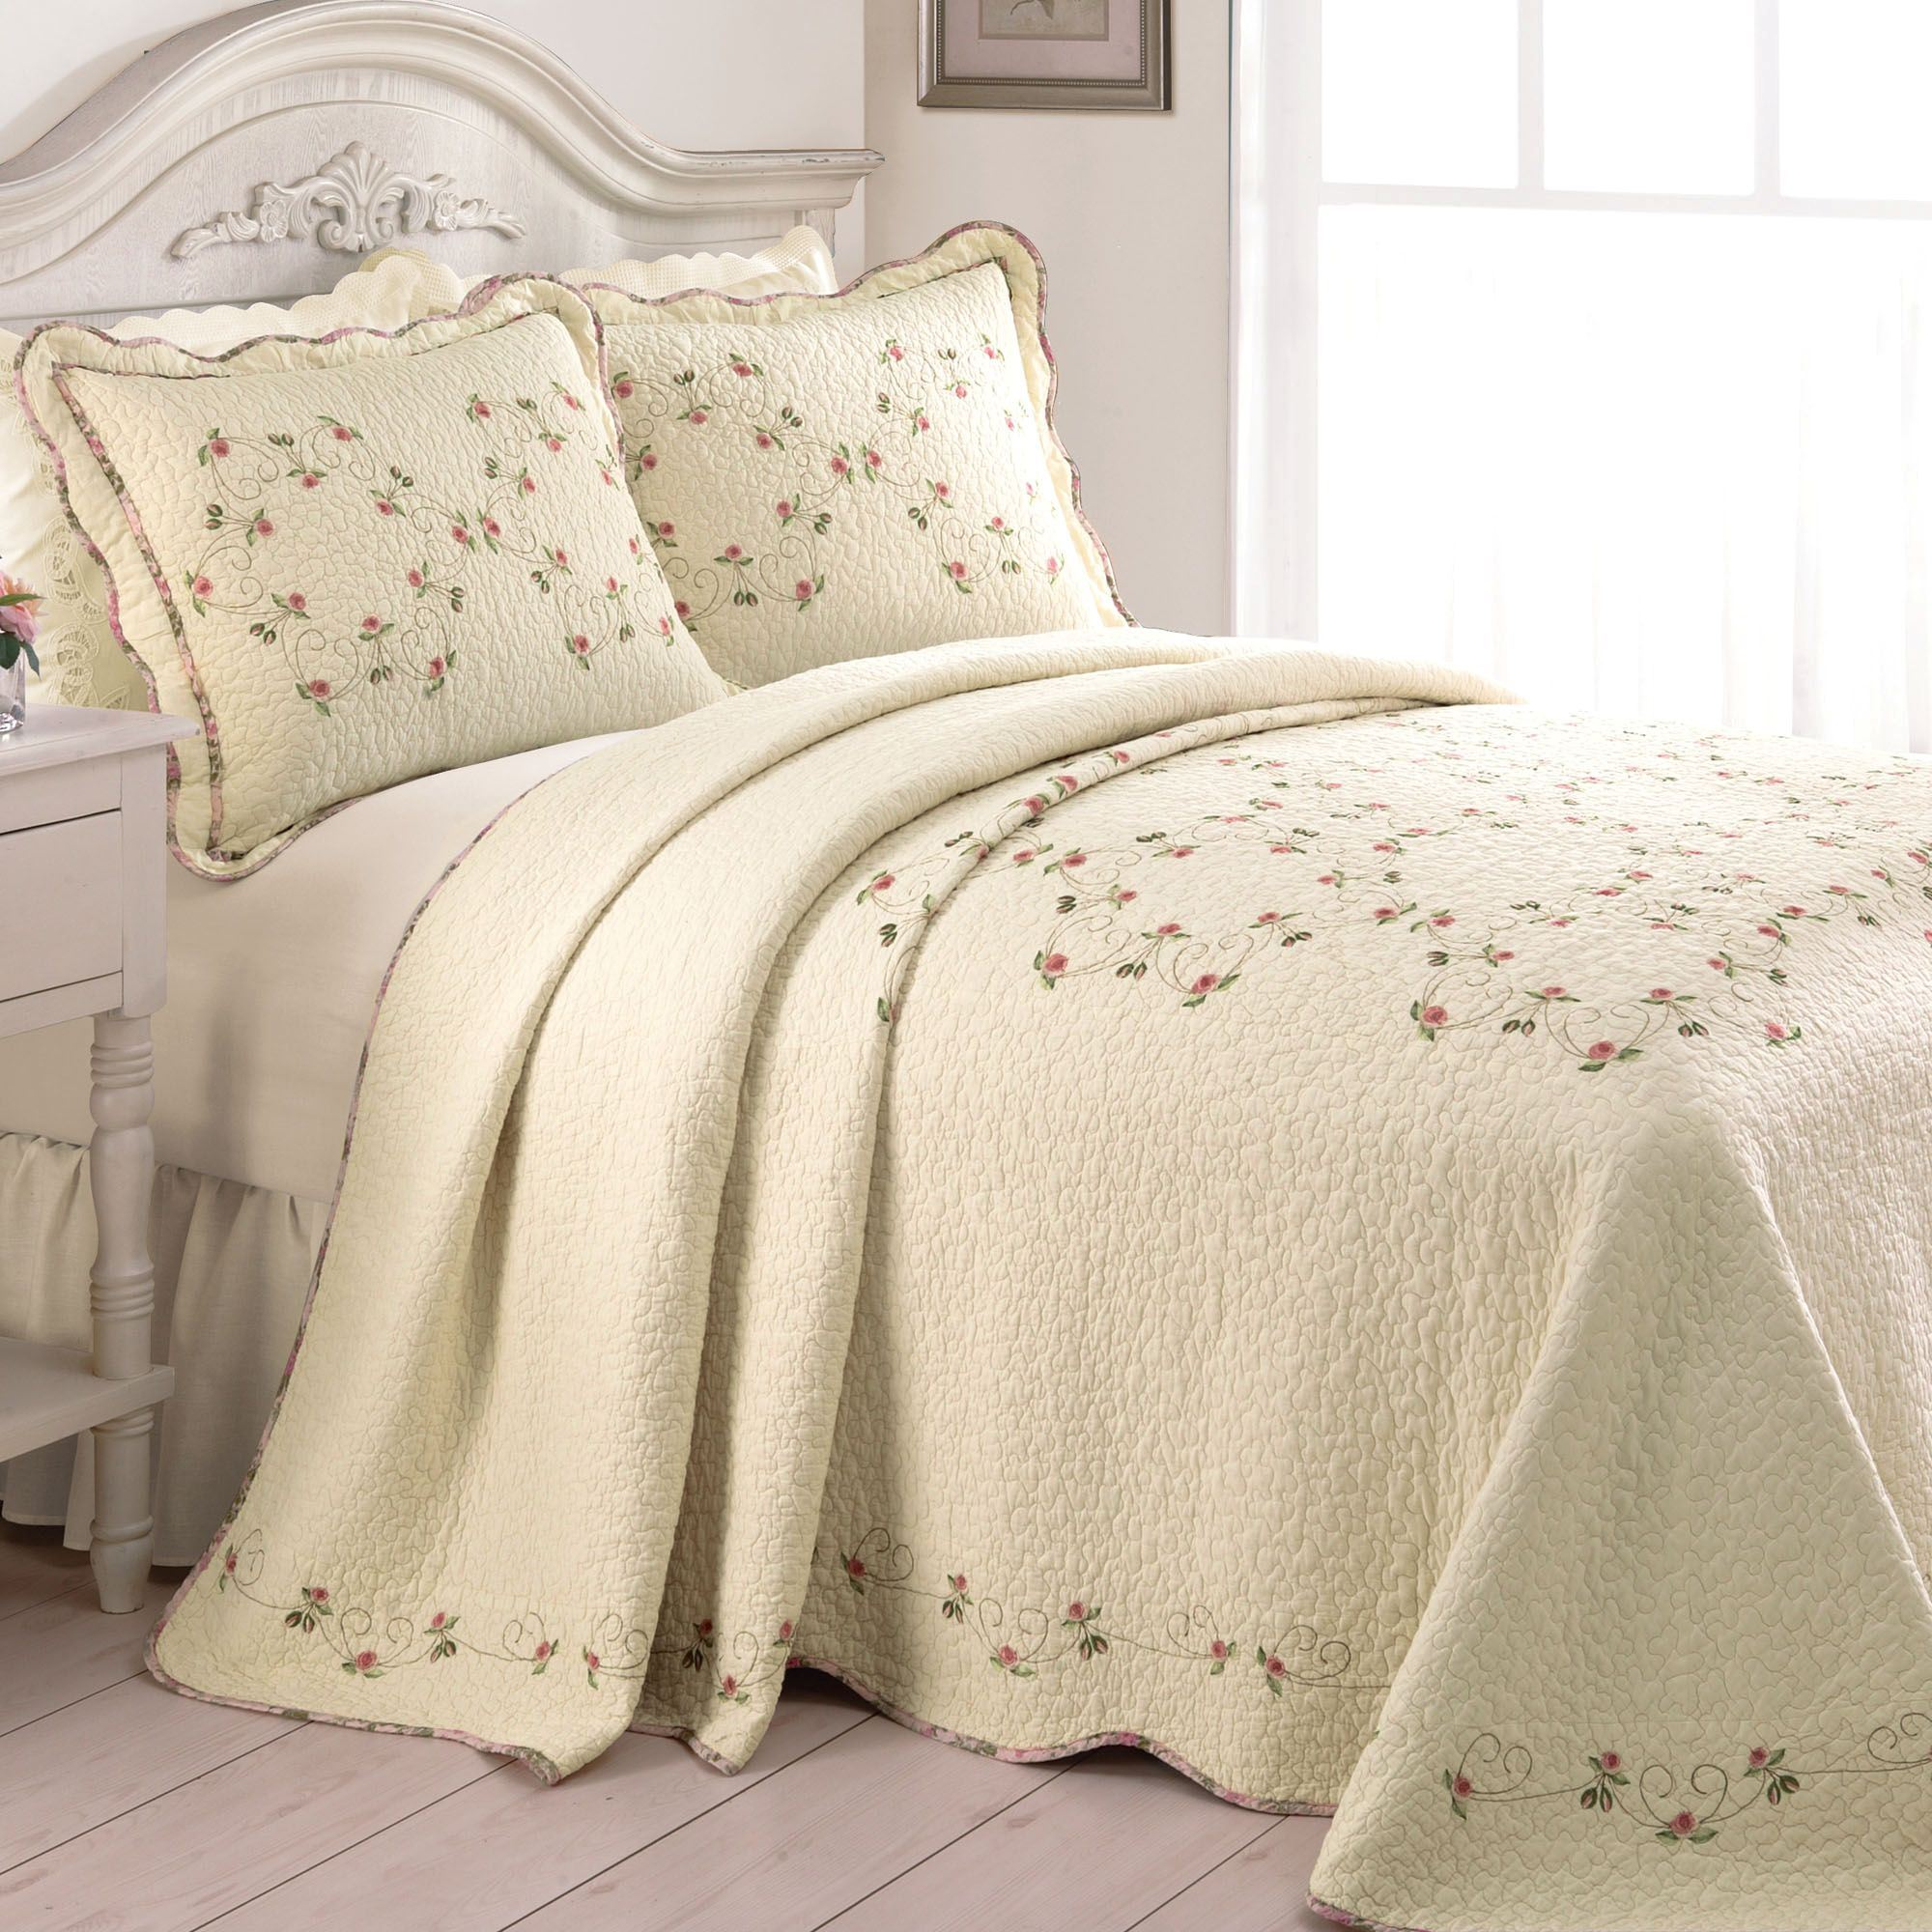 Felisa Embroidered Floral Quilted Bedspread